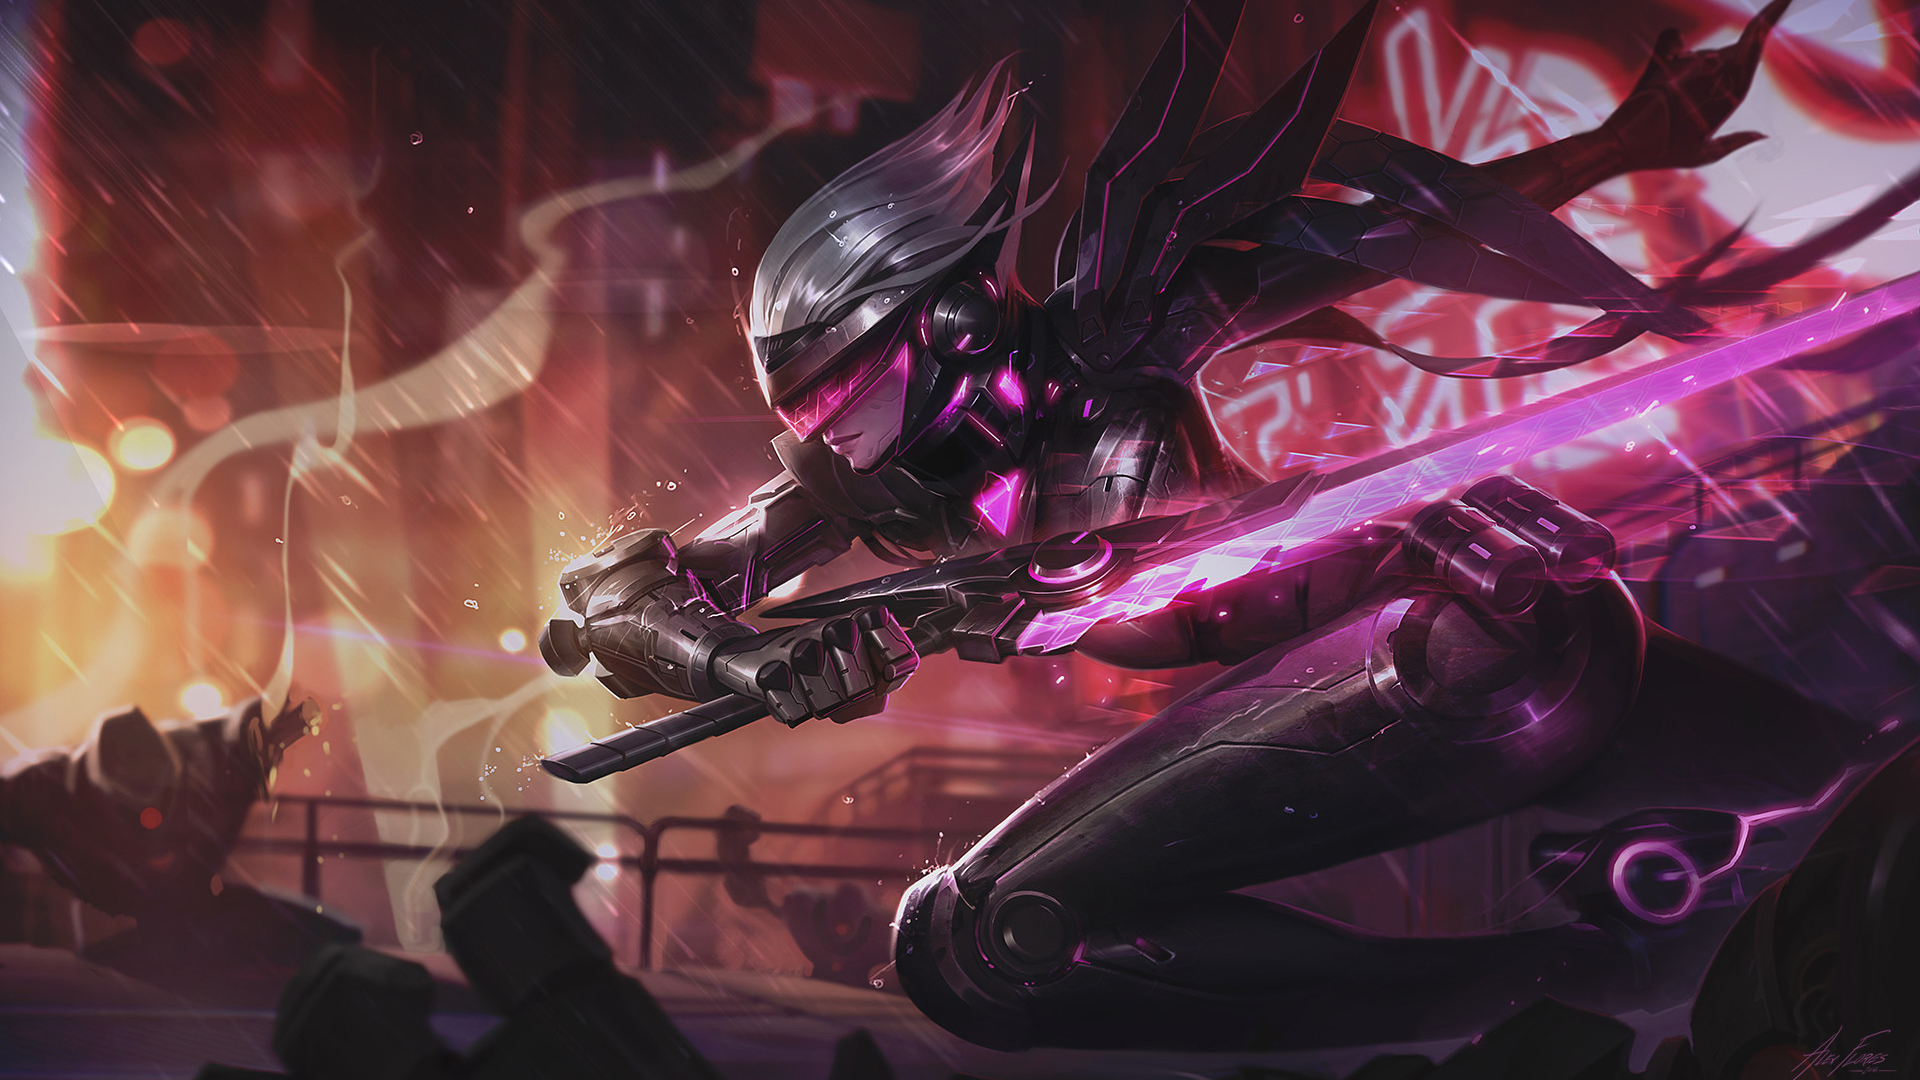 Fiora League of Legends Artwork7619010414 - Fiora League of Legends Artwork - project fiora wallpapers, Legends, League, Fiora, Artwork